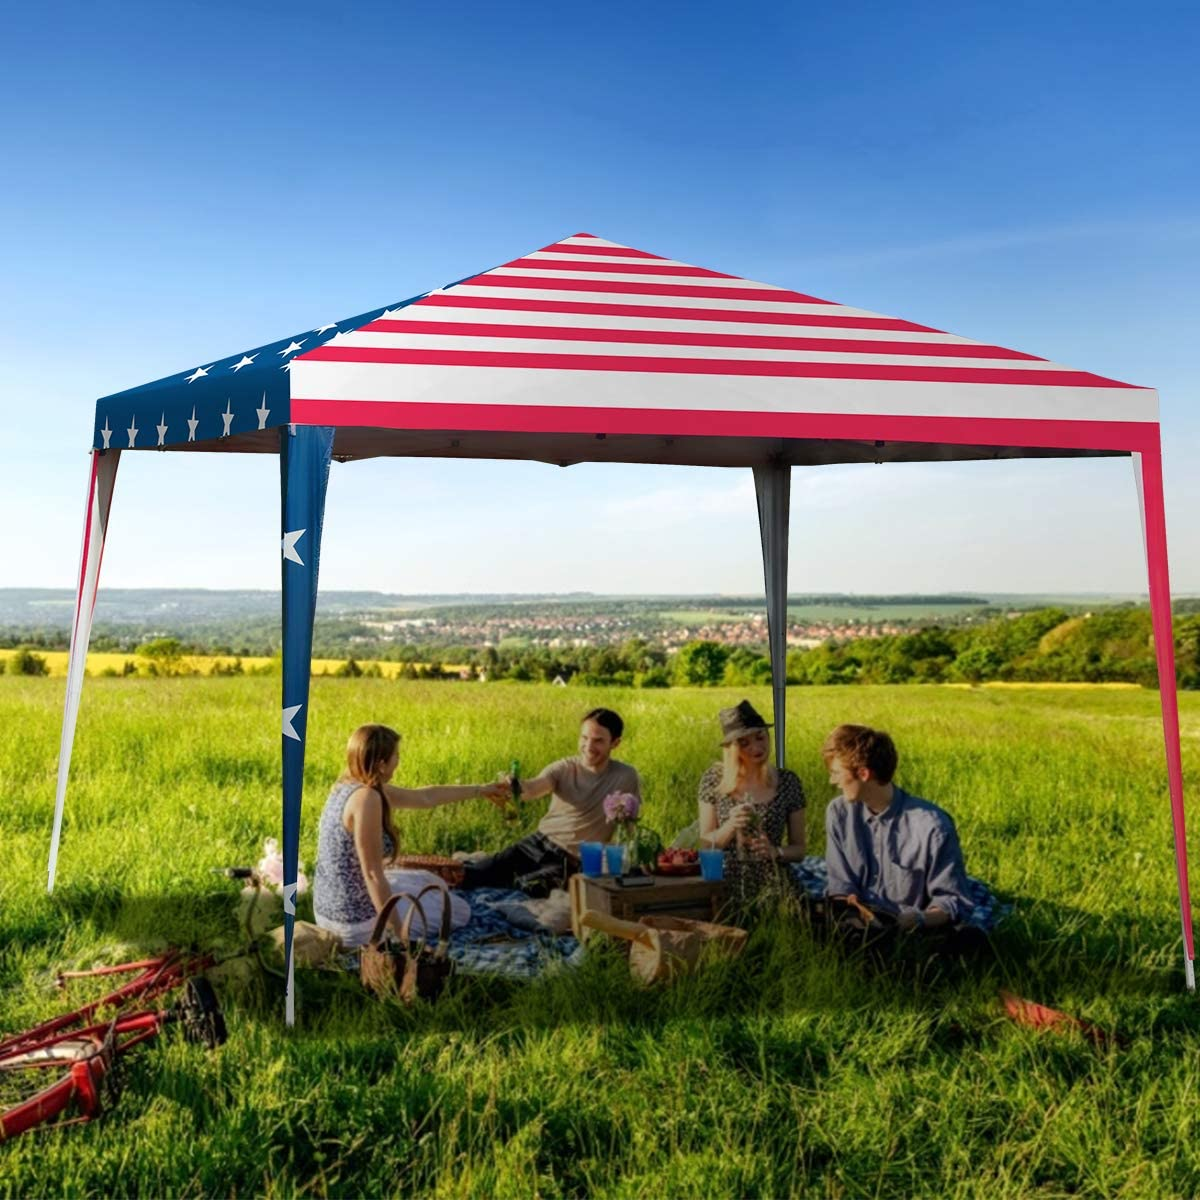 Tangkula Outdoor 10 X 10 Pop-Up Canopy Tent, Party Tent with Removable Mesh Side Walls, Waterproof Canopy Tent for Wedding Exhibition Patio BBQ, Folding Gazebo with Carry Bag, American Flag Printing